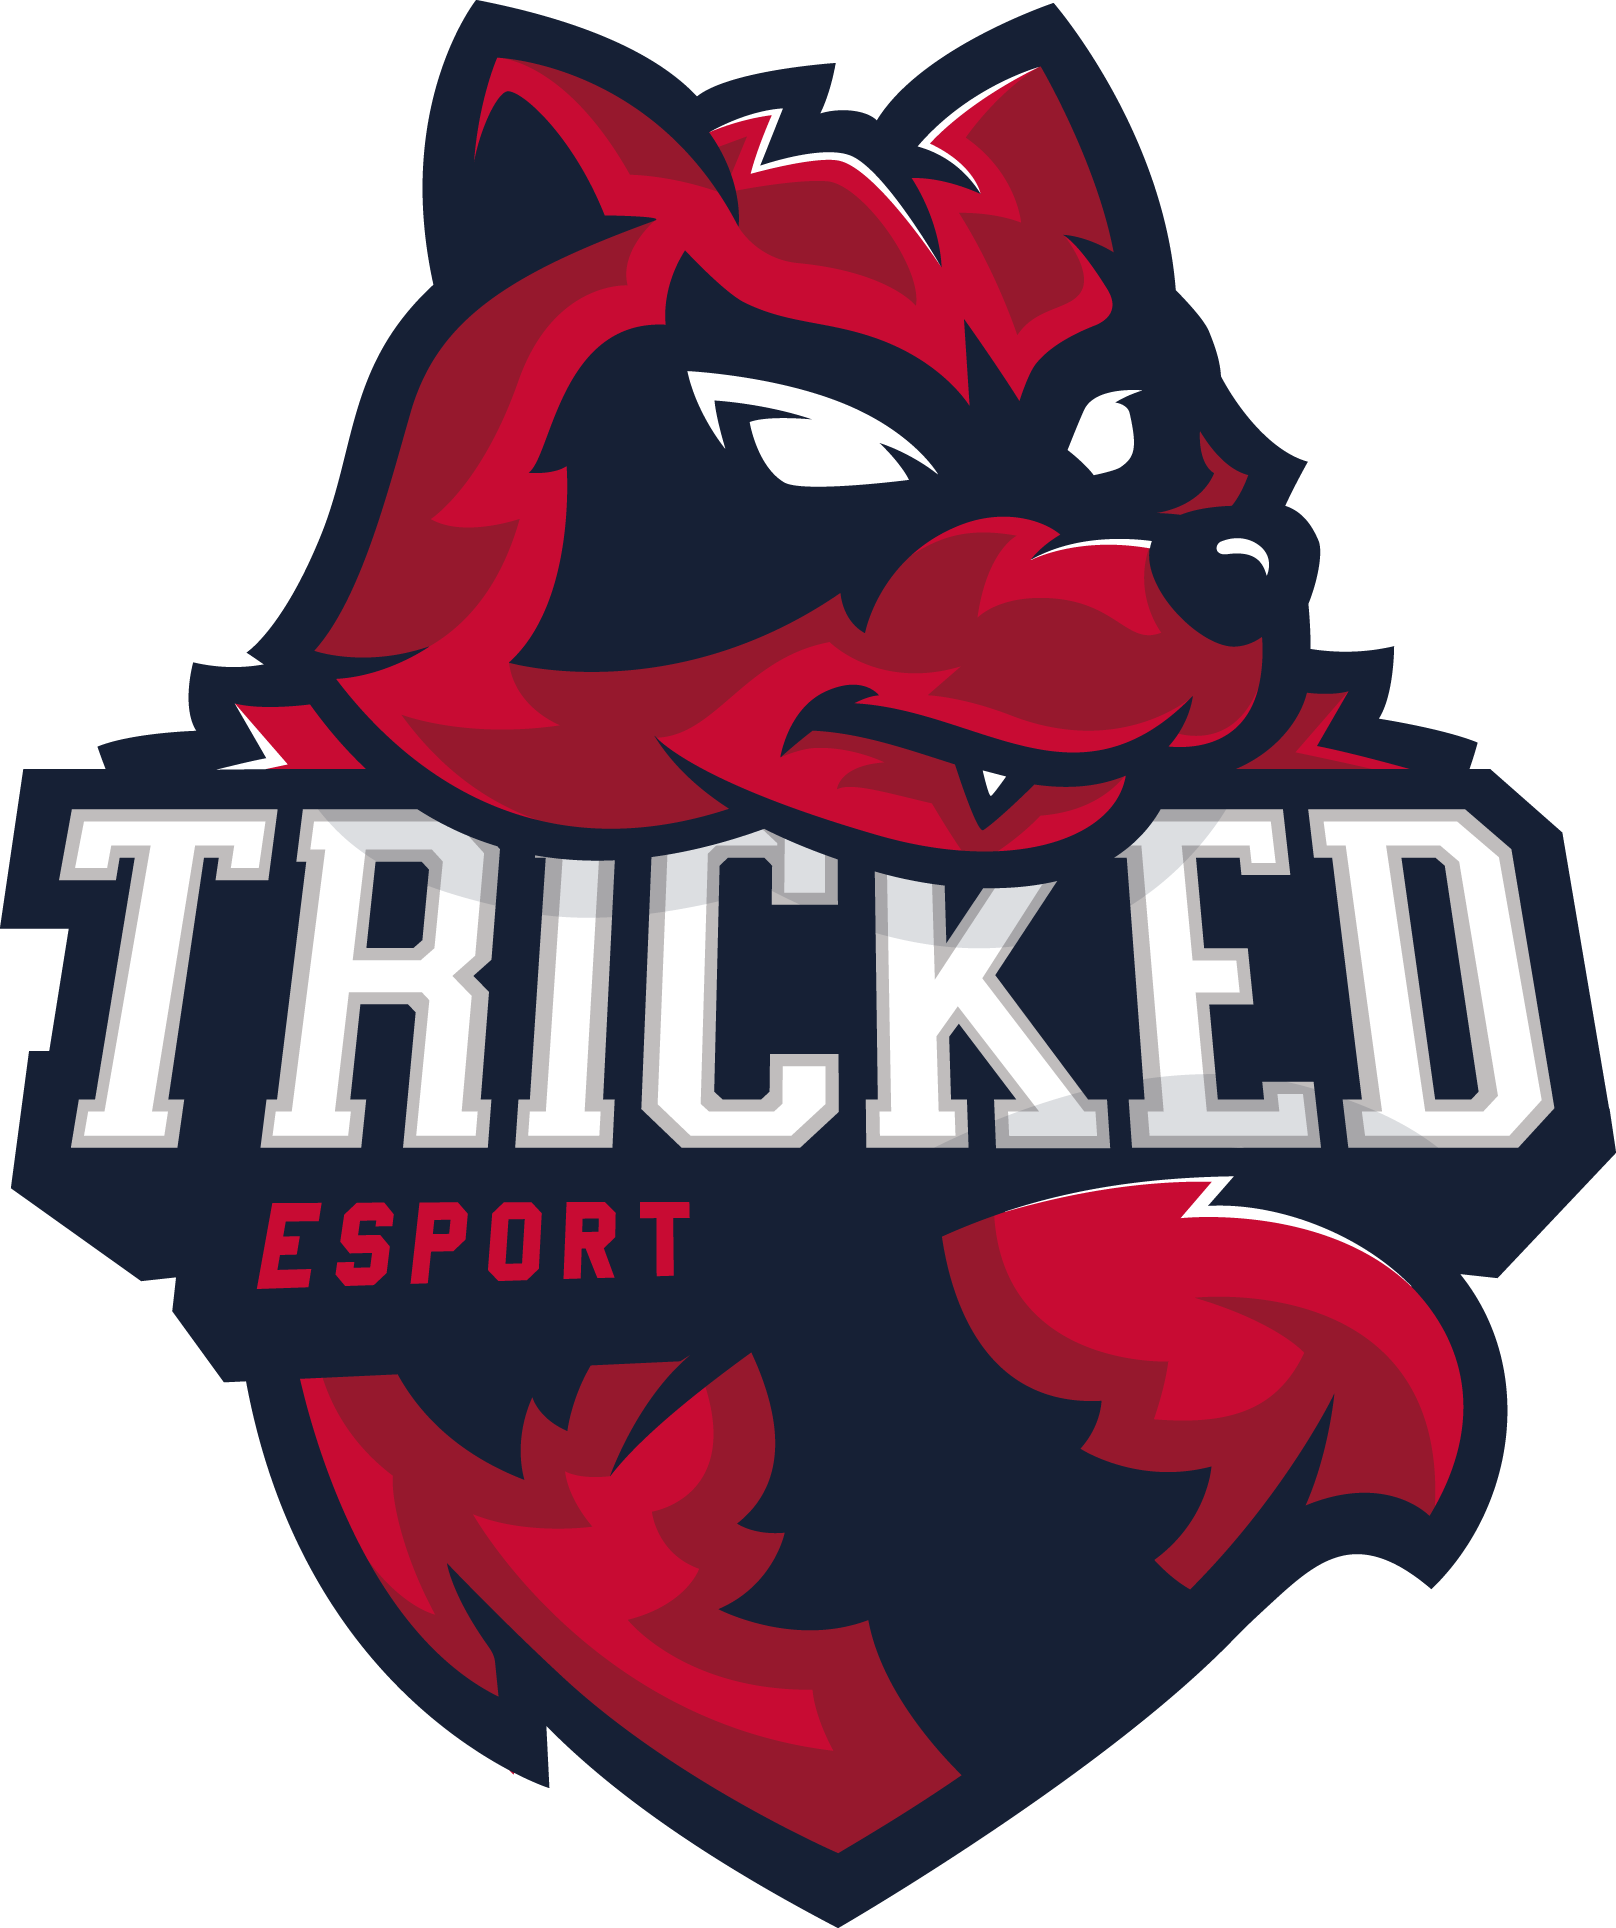 Tricked Esport CS:GO Team